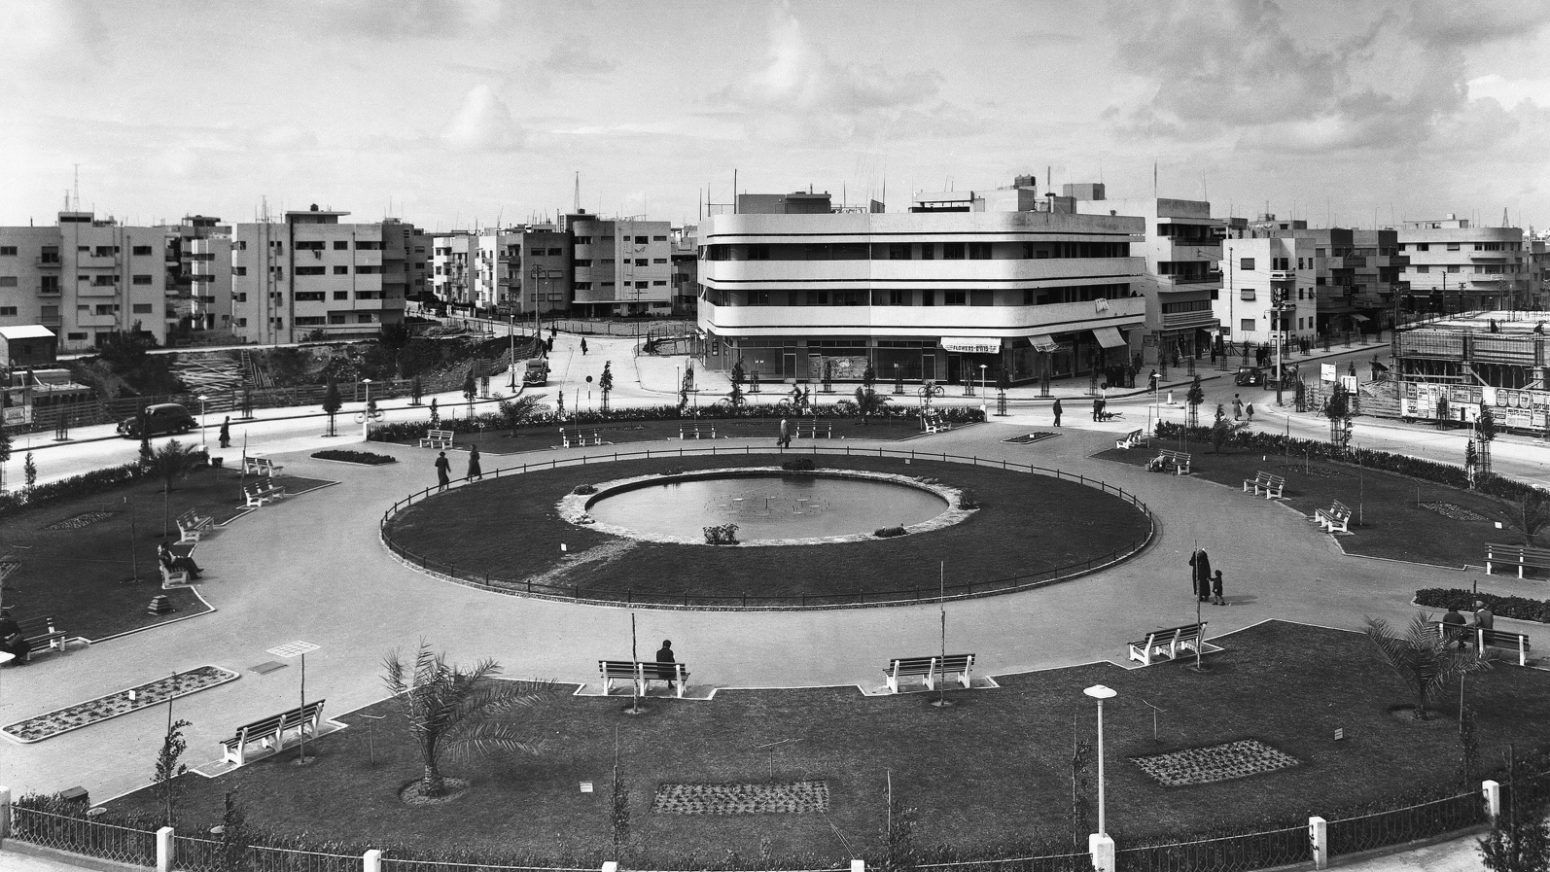 This Bauhaus building is located at Tzina Square (now Dizengoff Square) in Tel Aviv, built in 1937 by Genia Averbuch. Photo from the Library of Congress, G. Eric and Edith Matson Photograph Collection